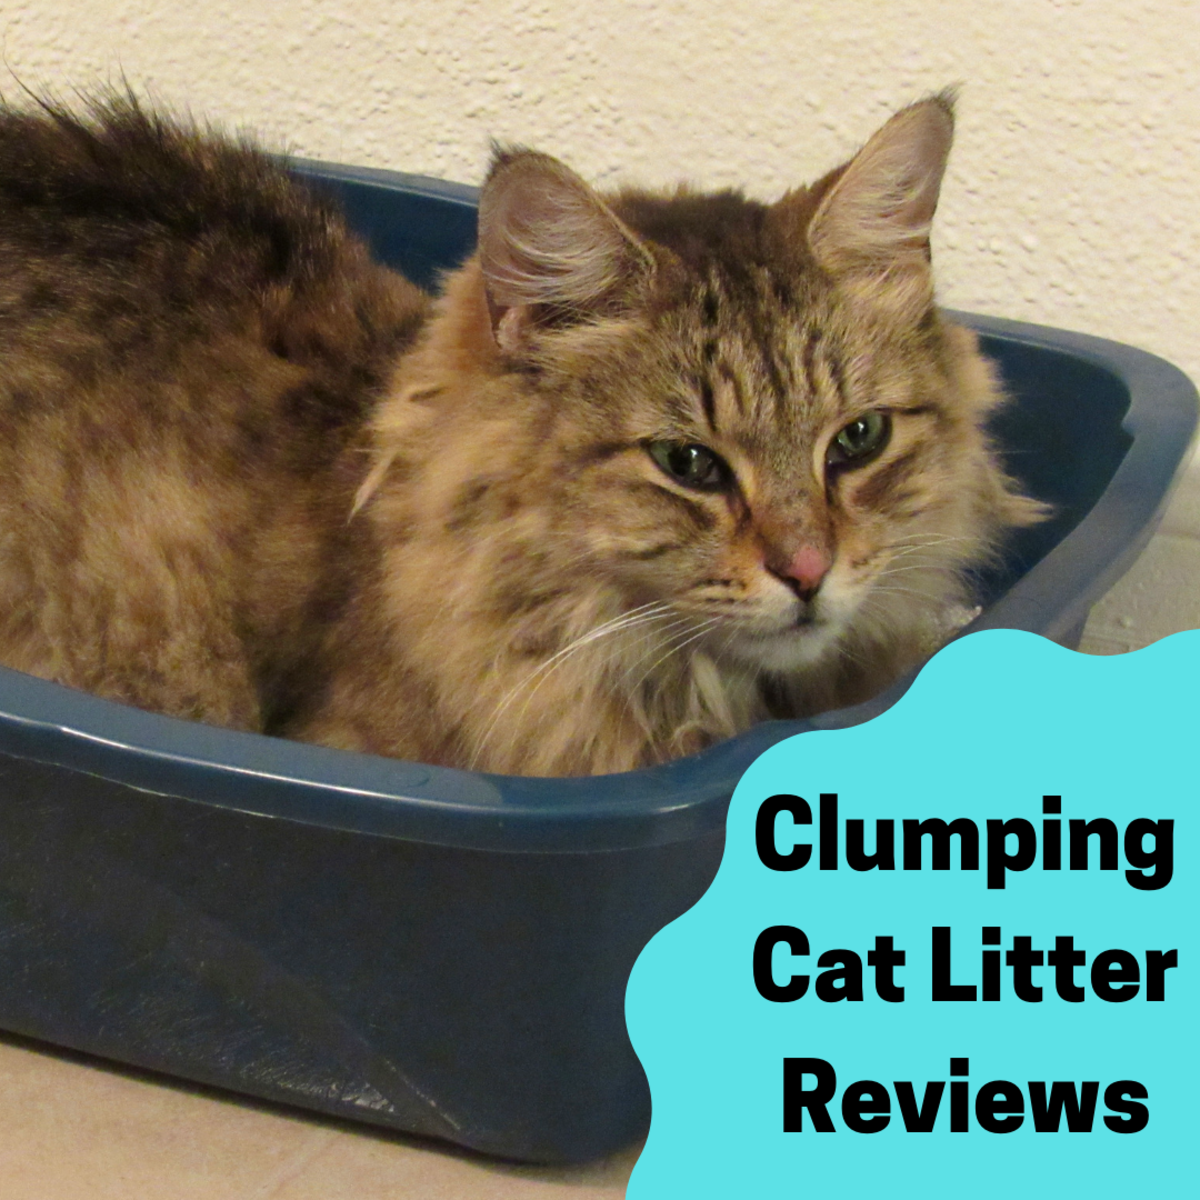 Cat Litter Reviews: Brand Reviews and the Best Clumping